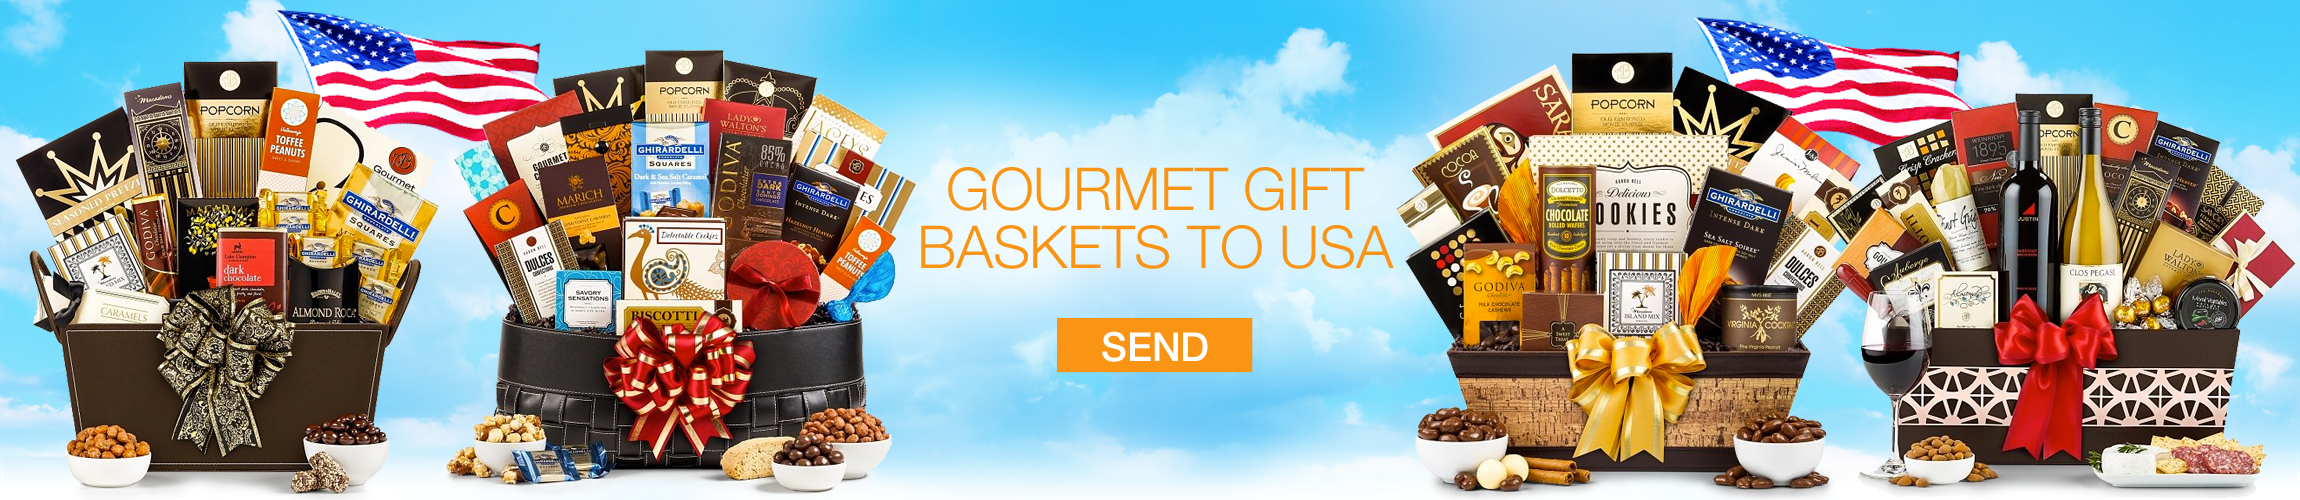 Gift Baskets to USA - Gourmet Gift Baskets Store